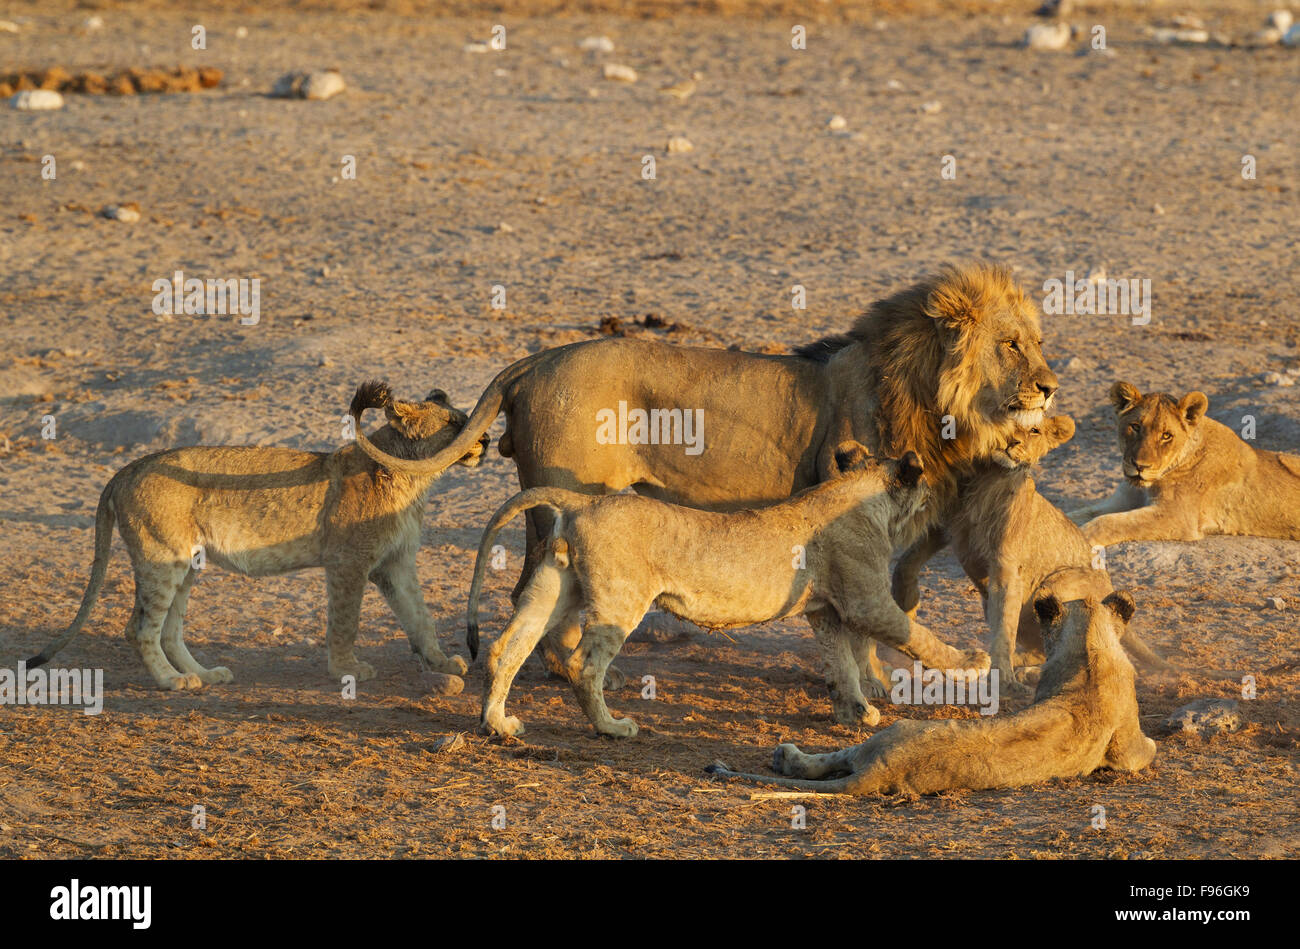 Lion (Panthera leo), male is affectionally greeted by the cubs of the pride, Etosha National Park, Namibia - Stock Image